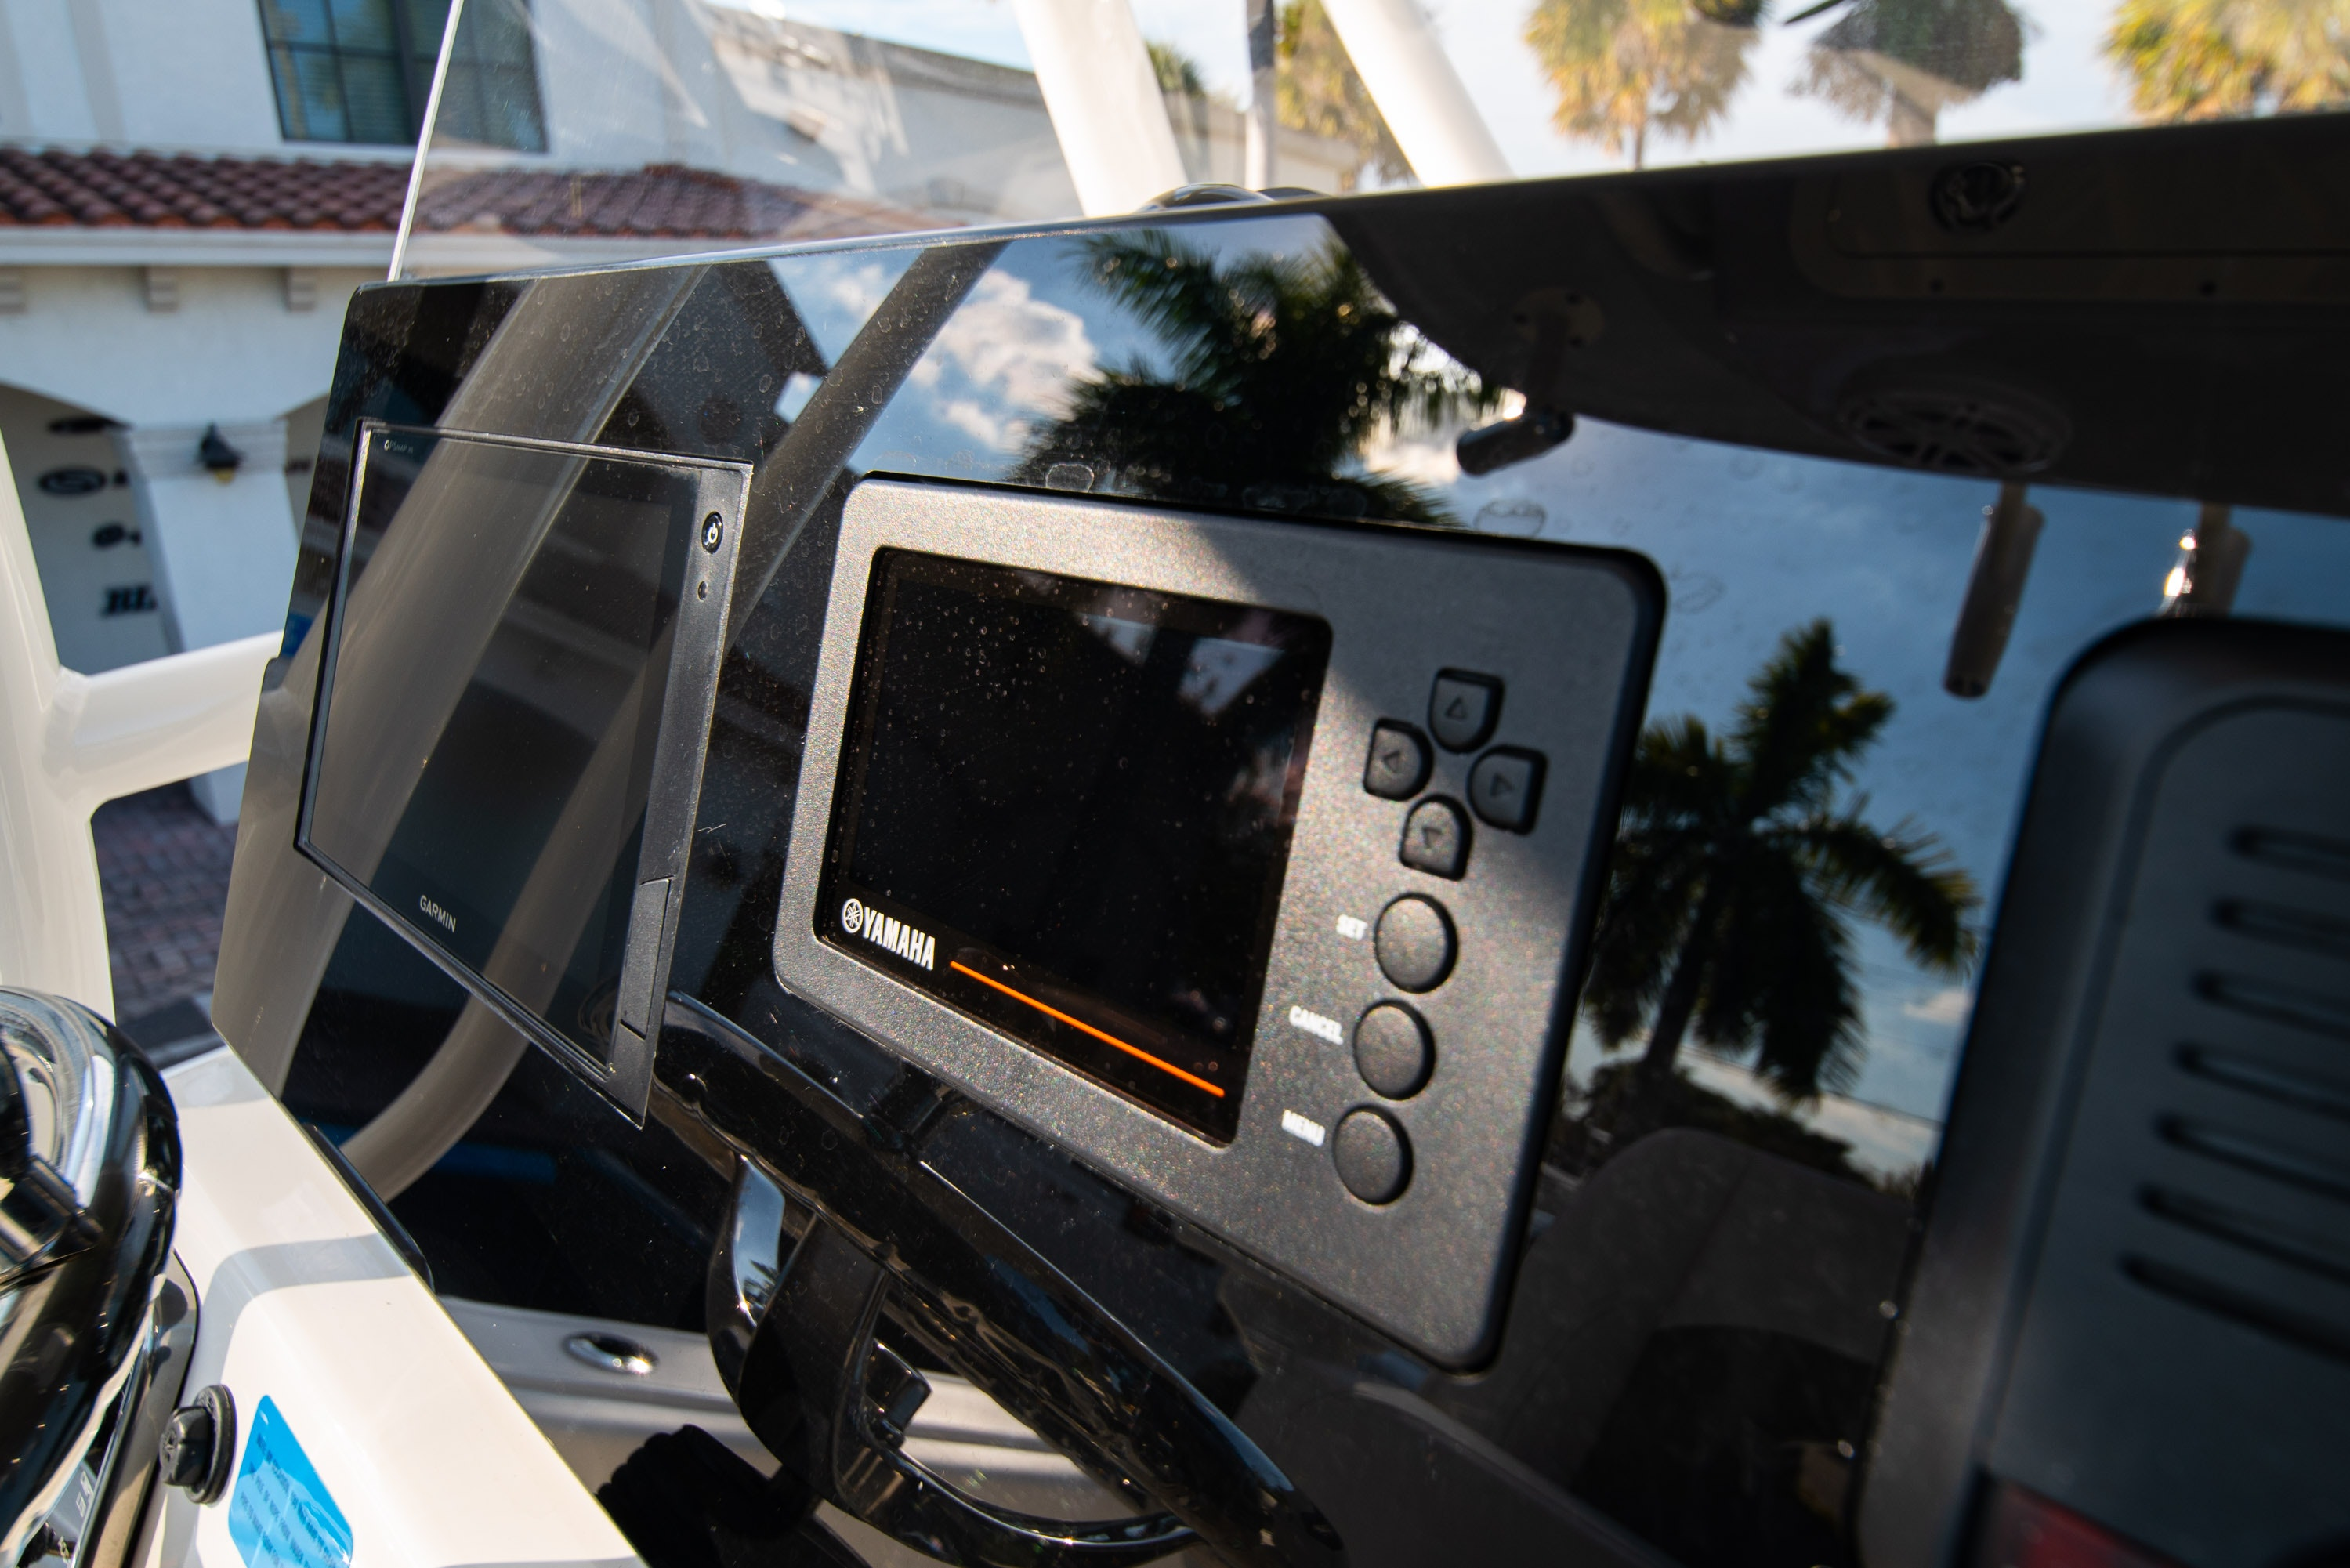 Thumbnail 22 for New 2020 Cobia 220 CC boat for sale in West Palm Beach, FL